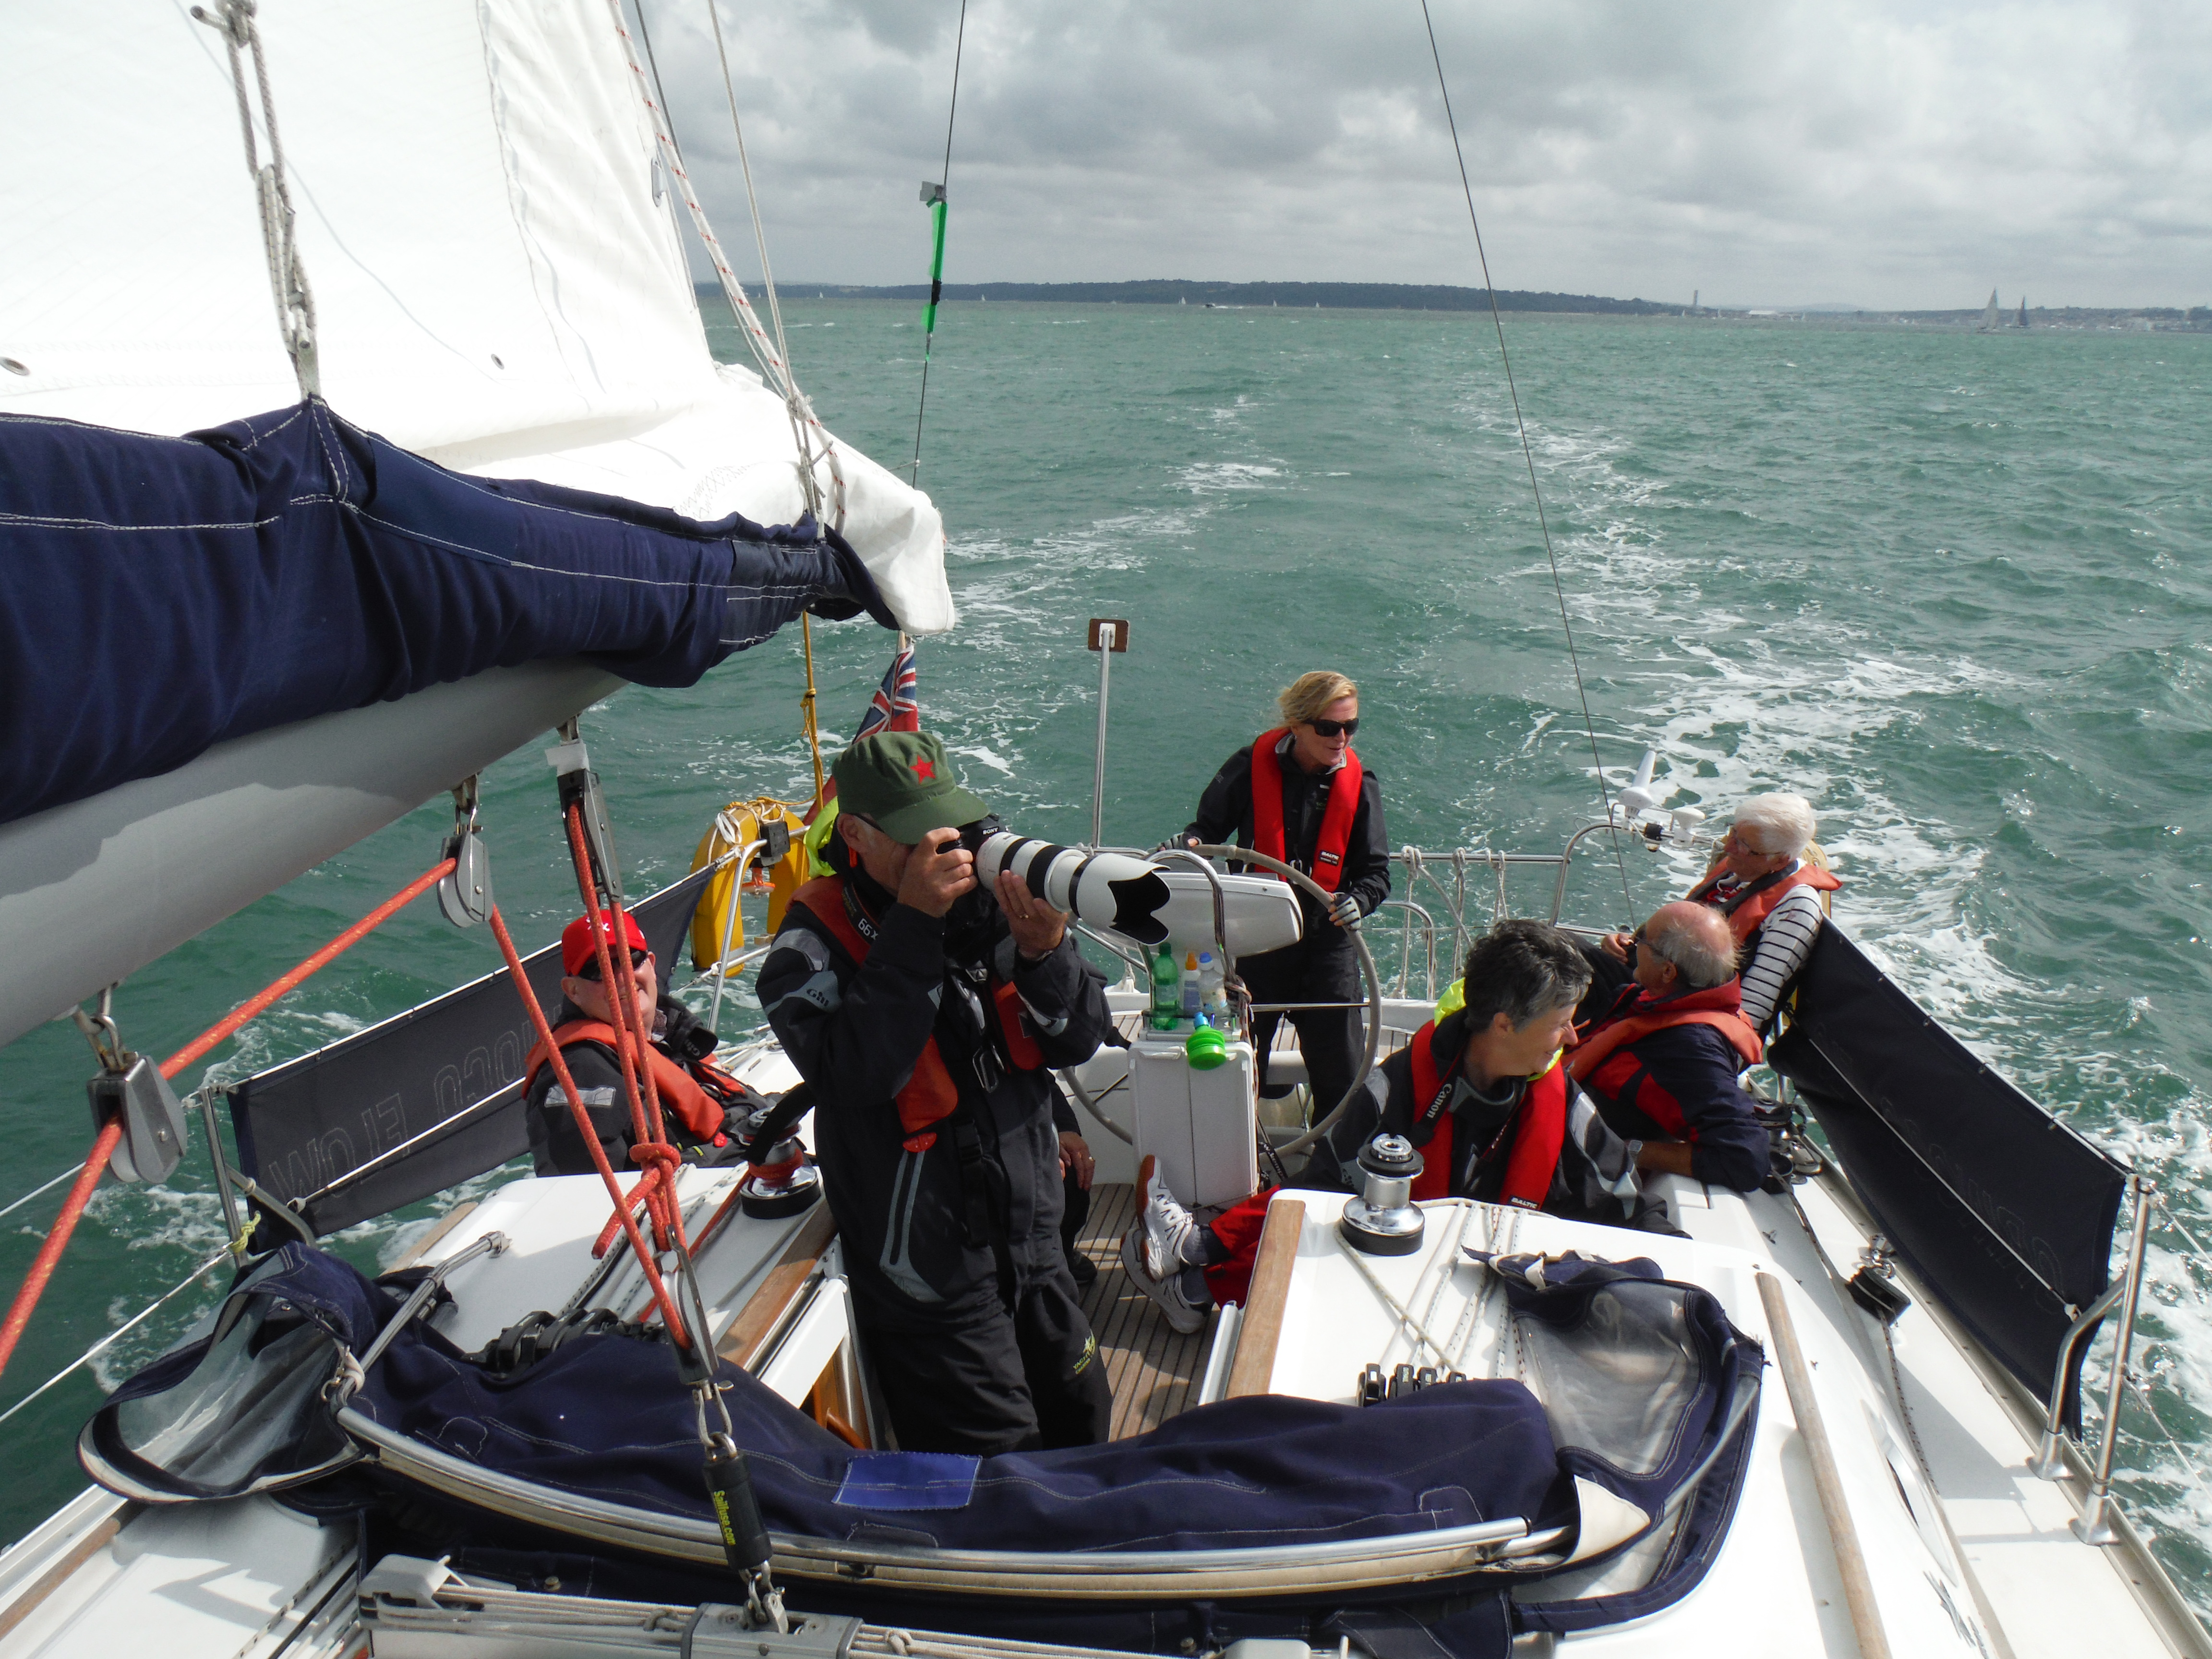 Cowes Week Spectator Day